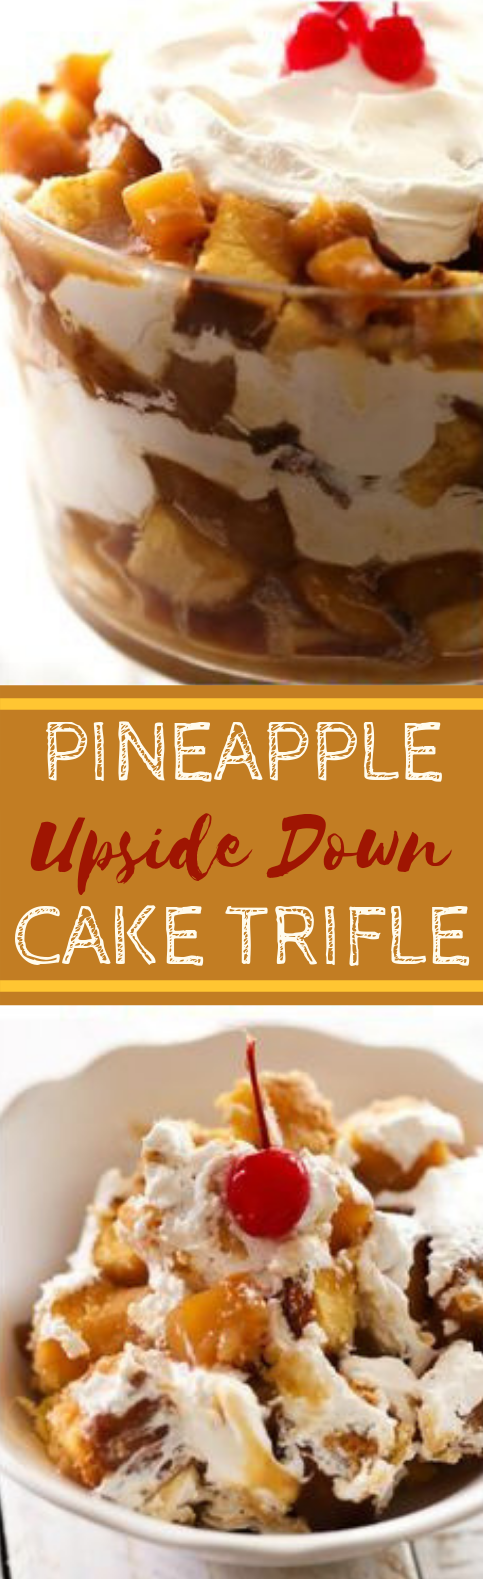 Pineapple Upside Down Cake Trifle #dessert #trifle